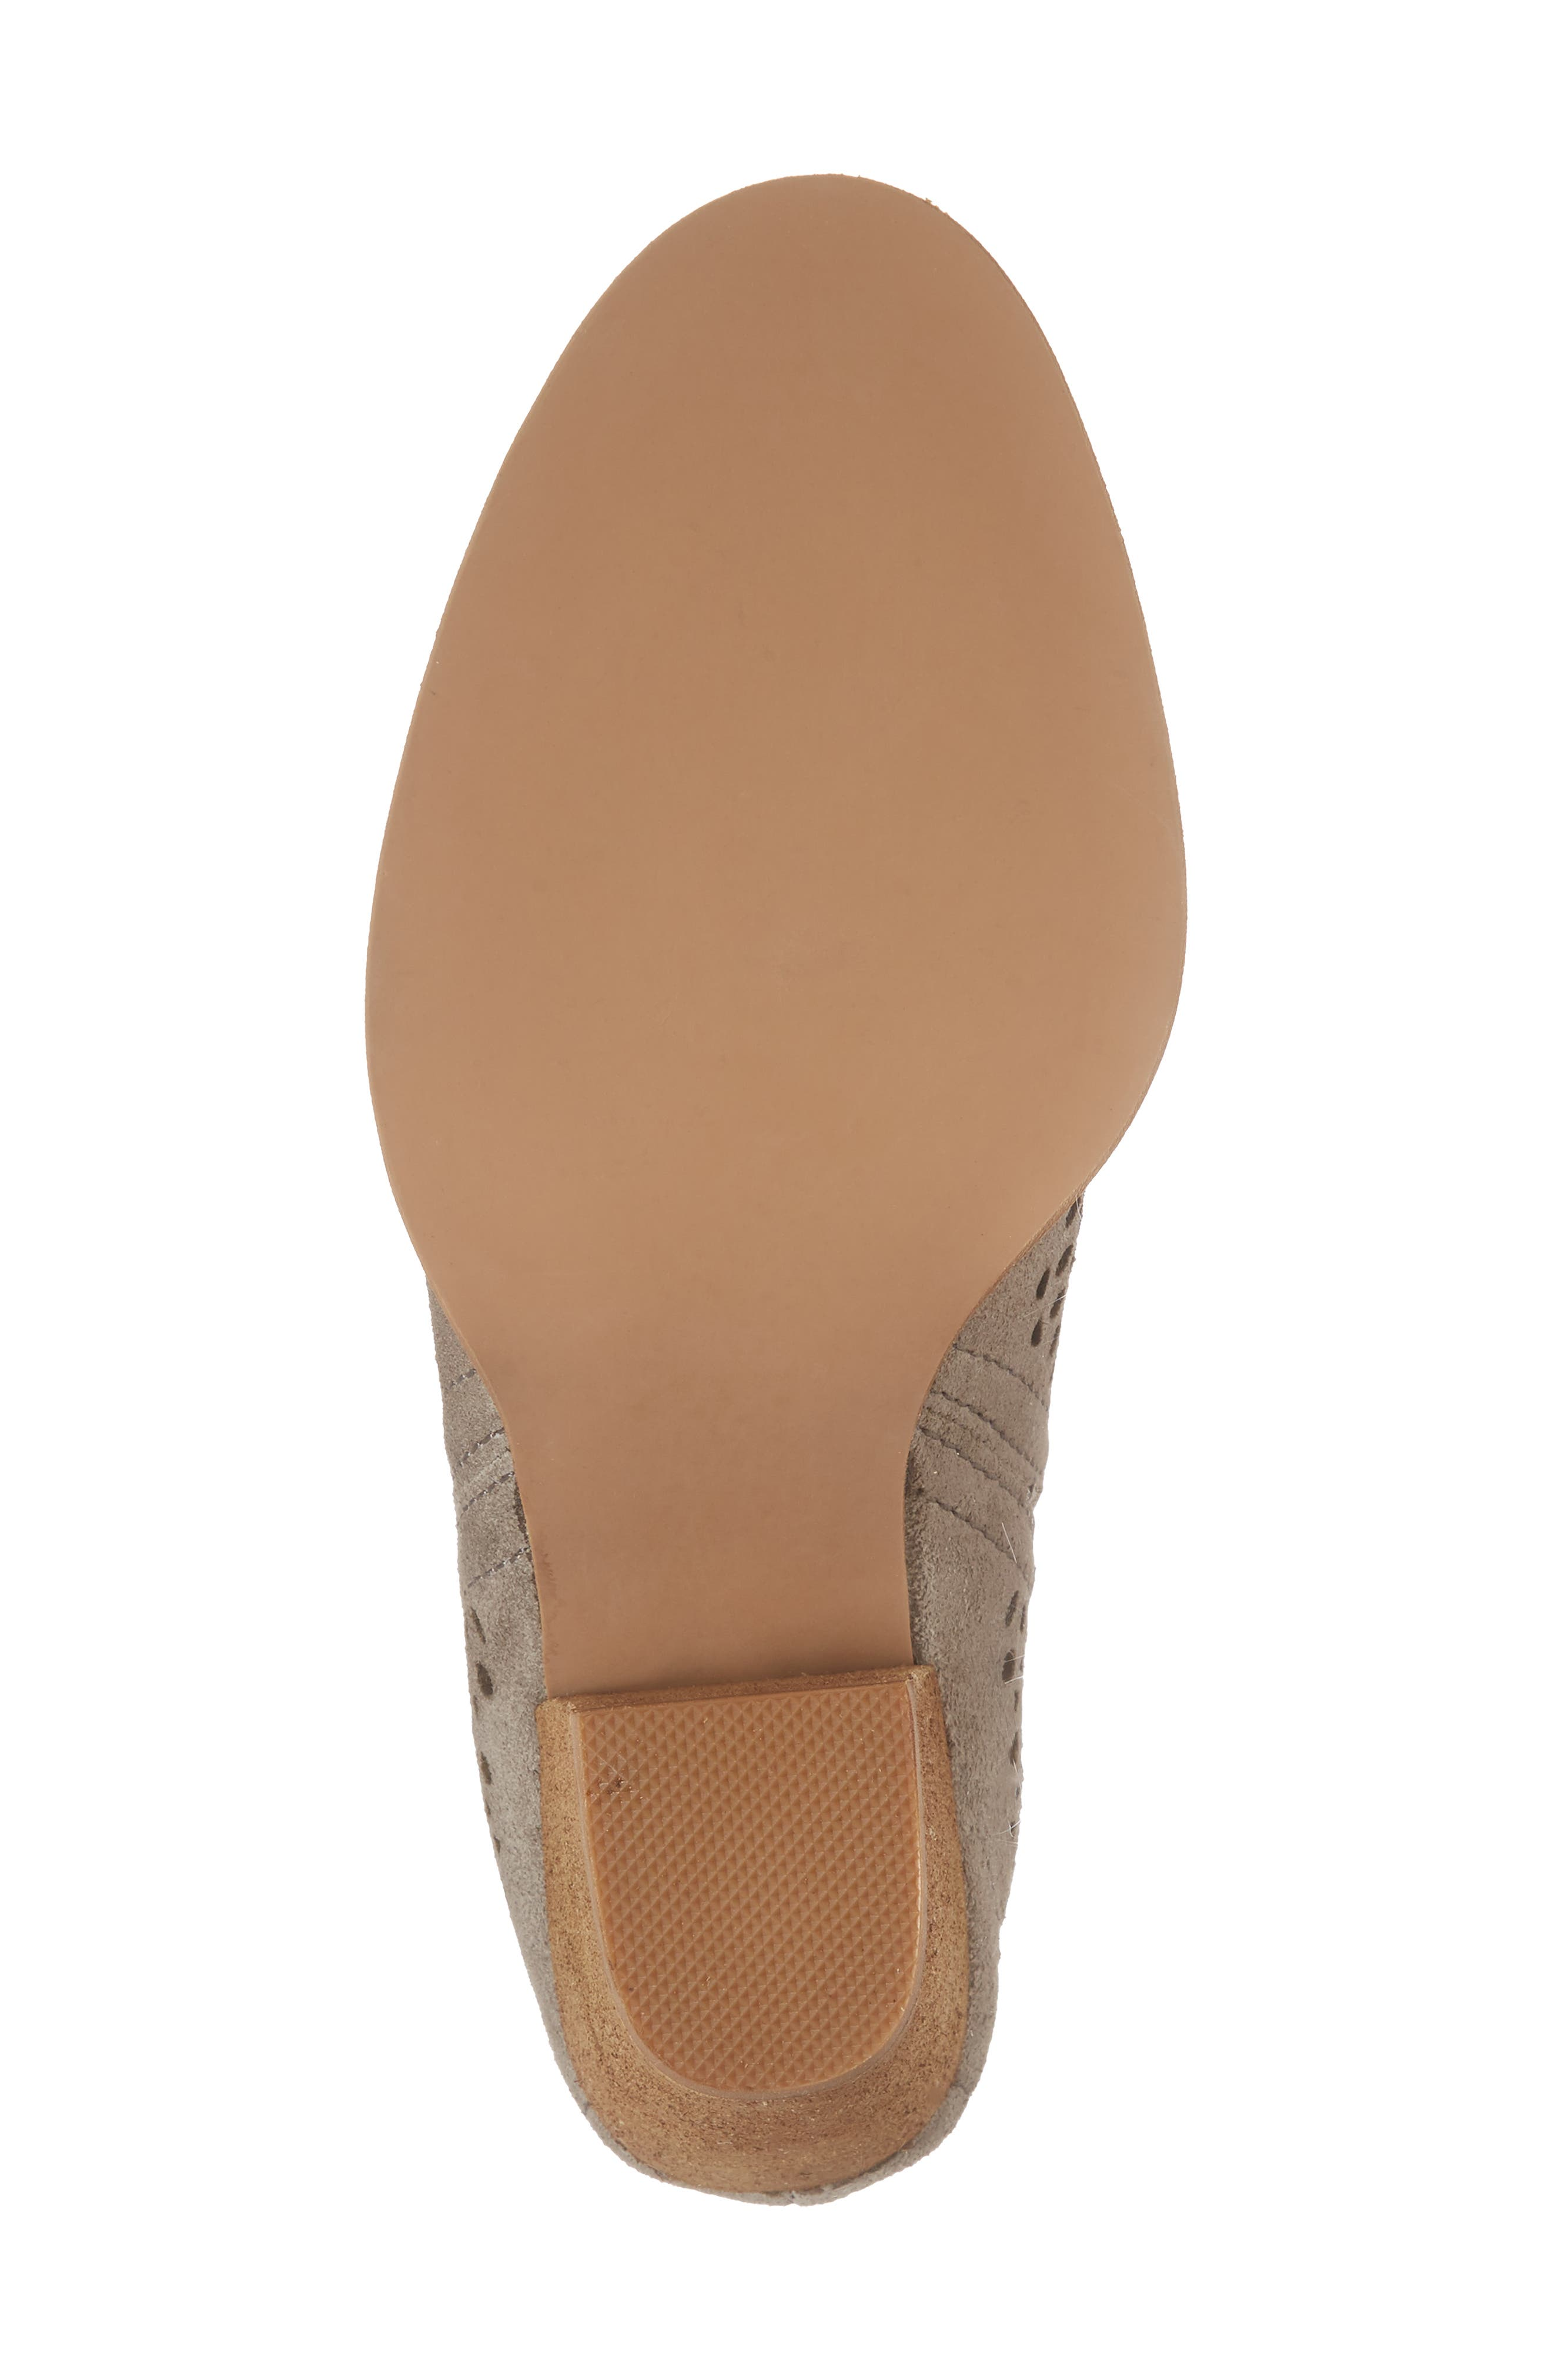 Rosalee Bootie,                             Alternate thumbnail 6, color,                             TAUPE SUEDE